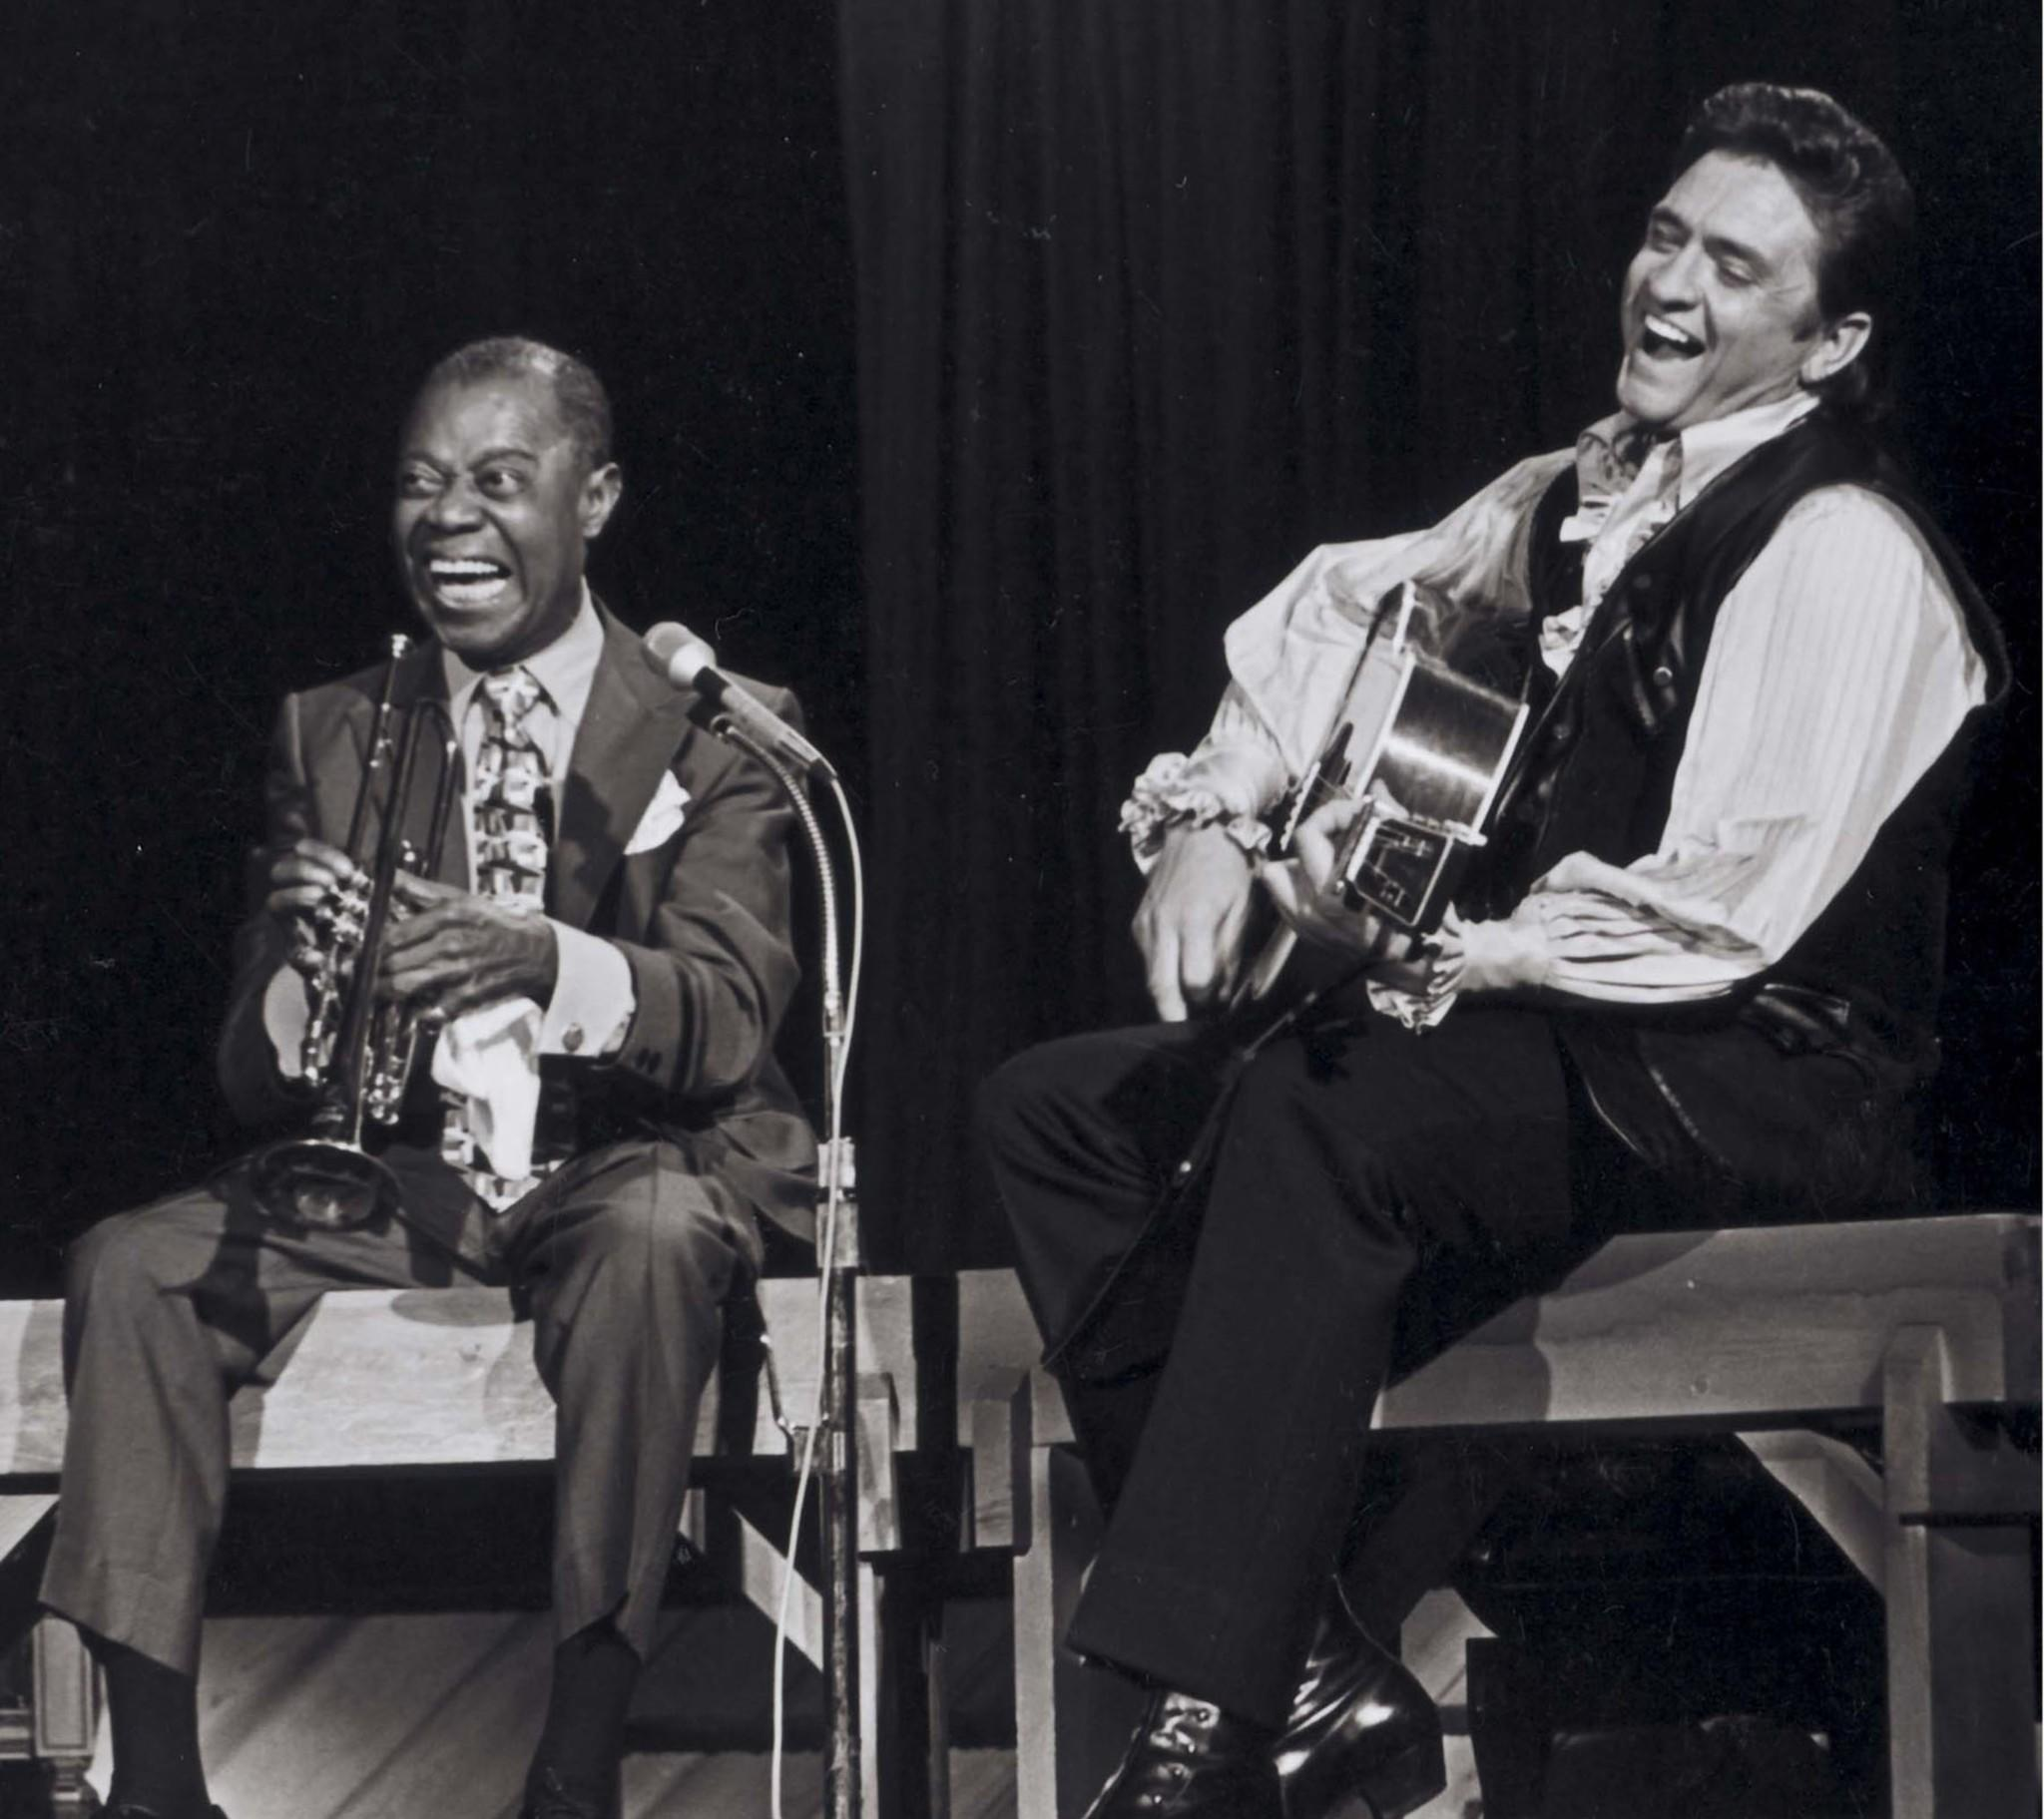 Johnny Cash, shown performing with Louis Armstrong, was known for championing social causes. (Les Leverett / Columbia Legacy)